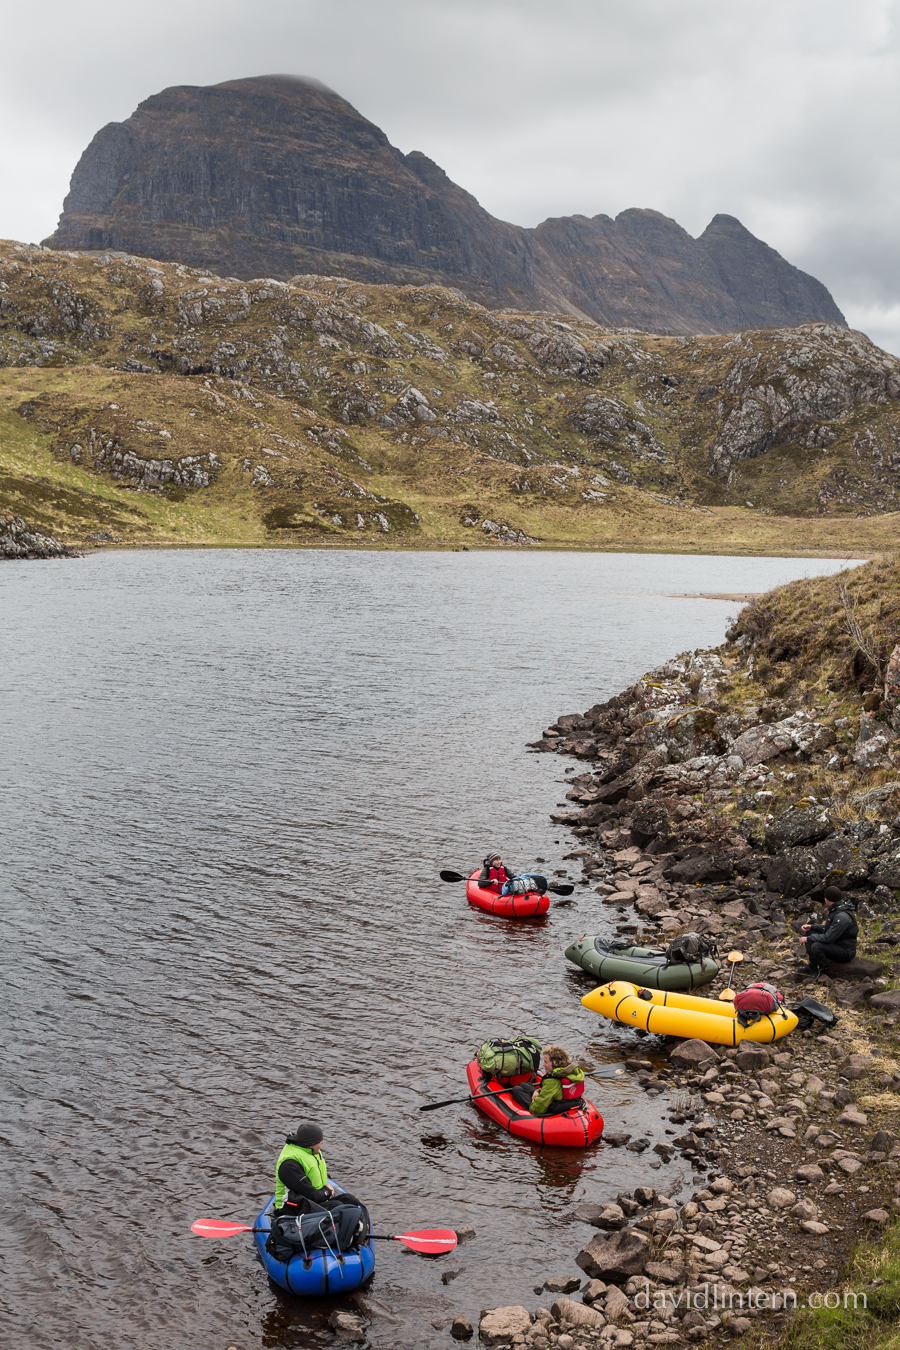 Discovering a new way to explore, with new friends under Suilven, Scotland